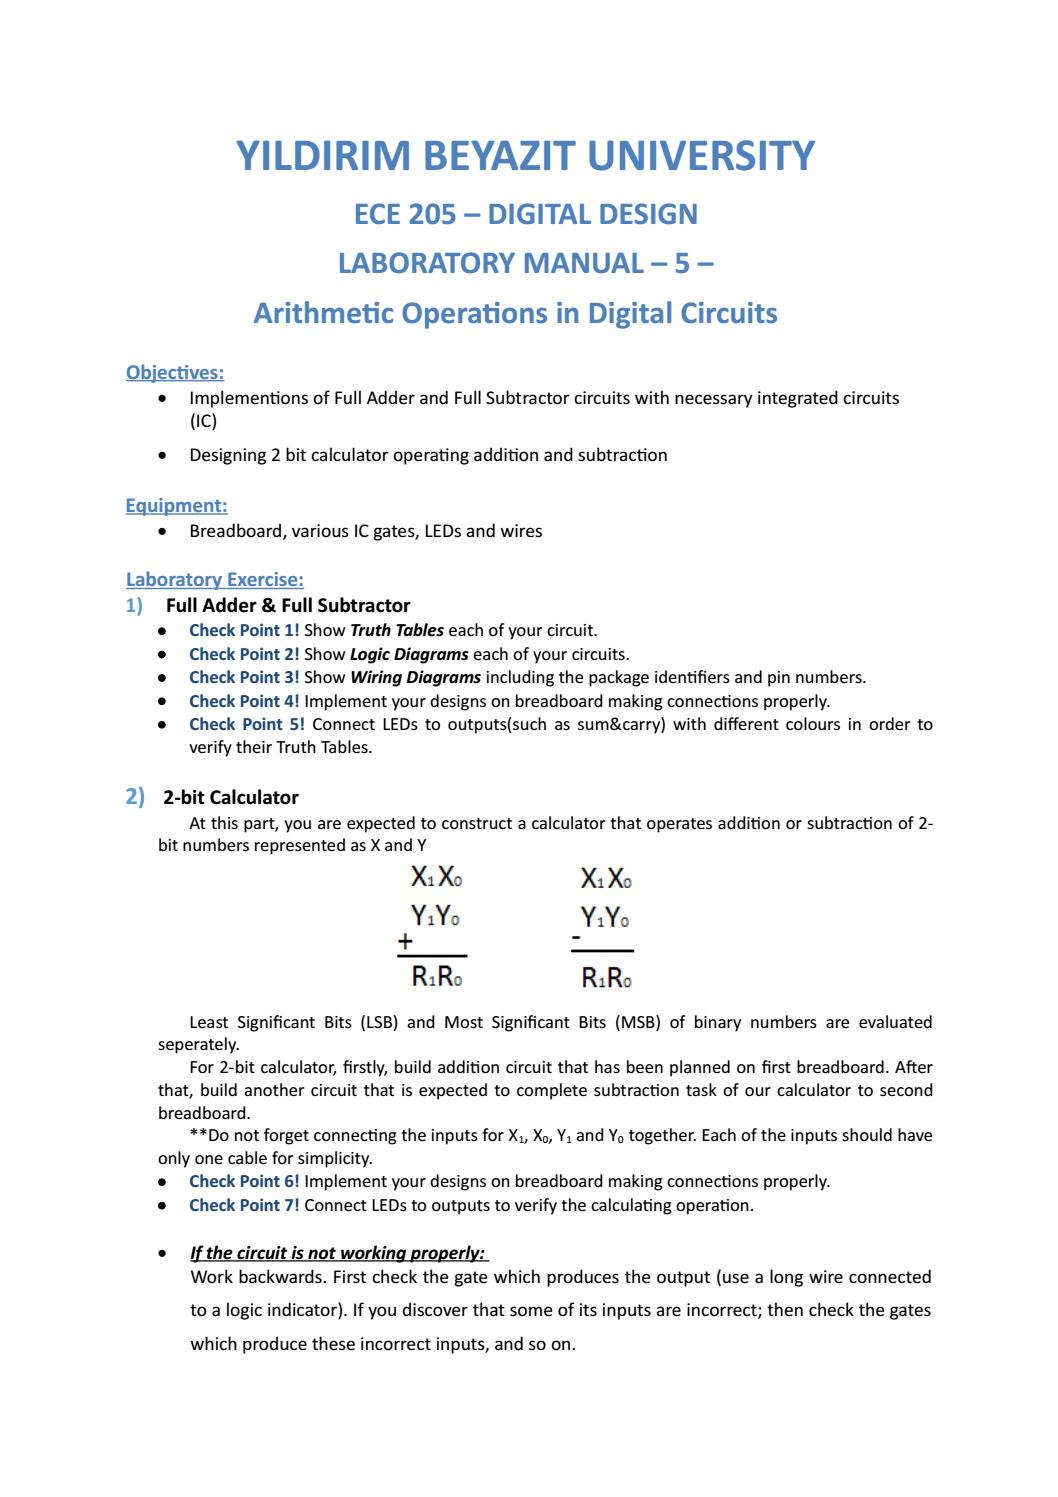 Ee205 Lab Manual 5 By Boyvanss Gassa Issuu Full Subtractor A Logic Circuit Which Is Used For Subtracting Three